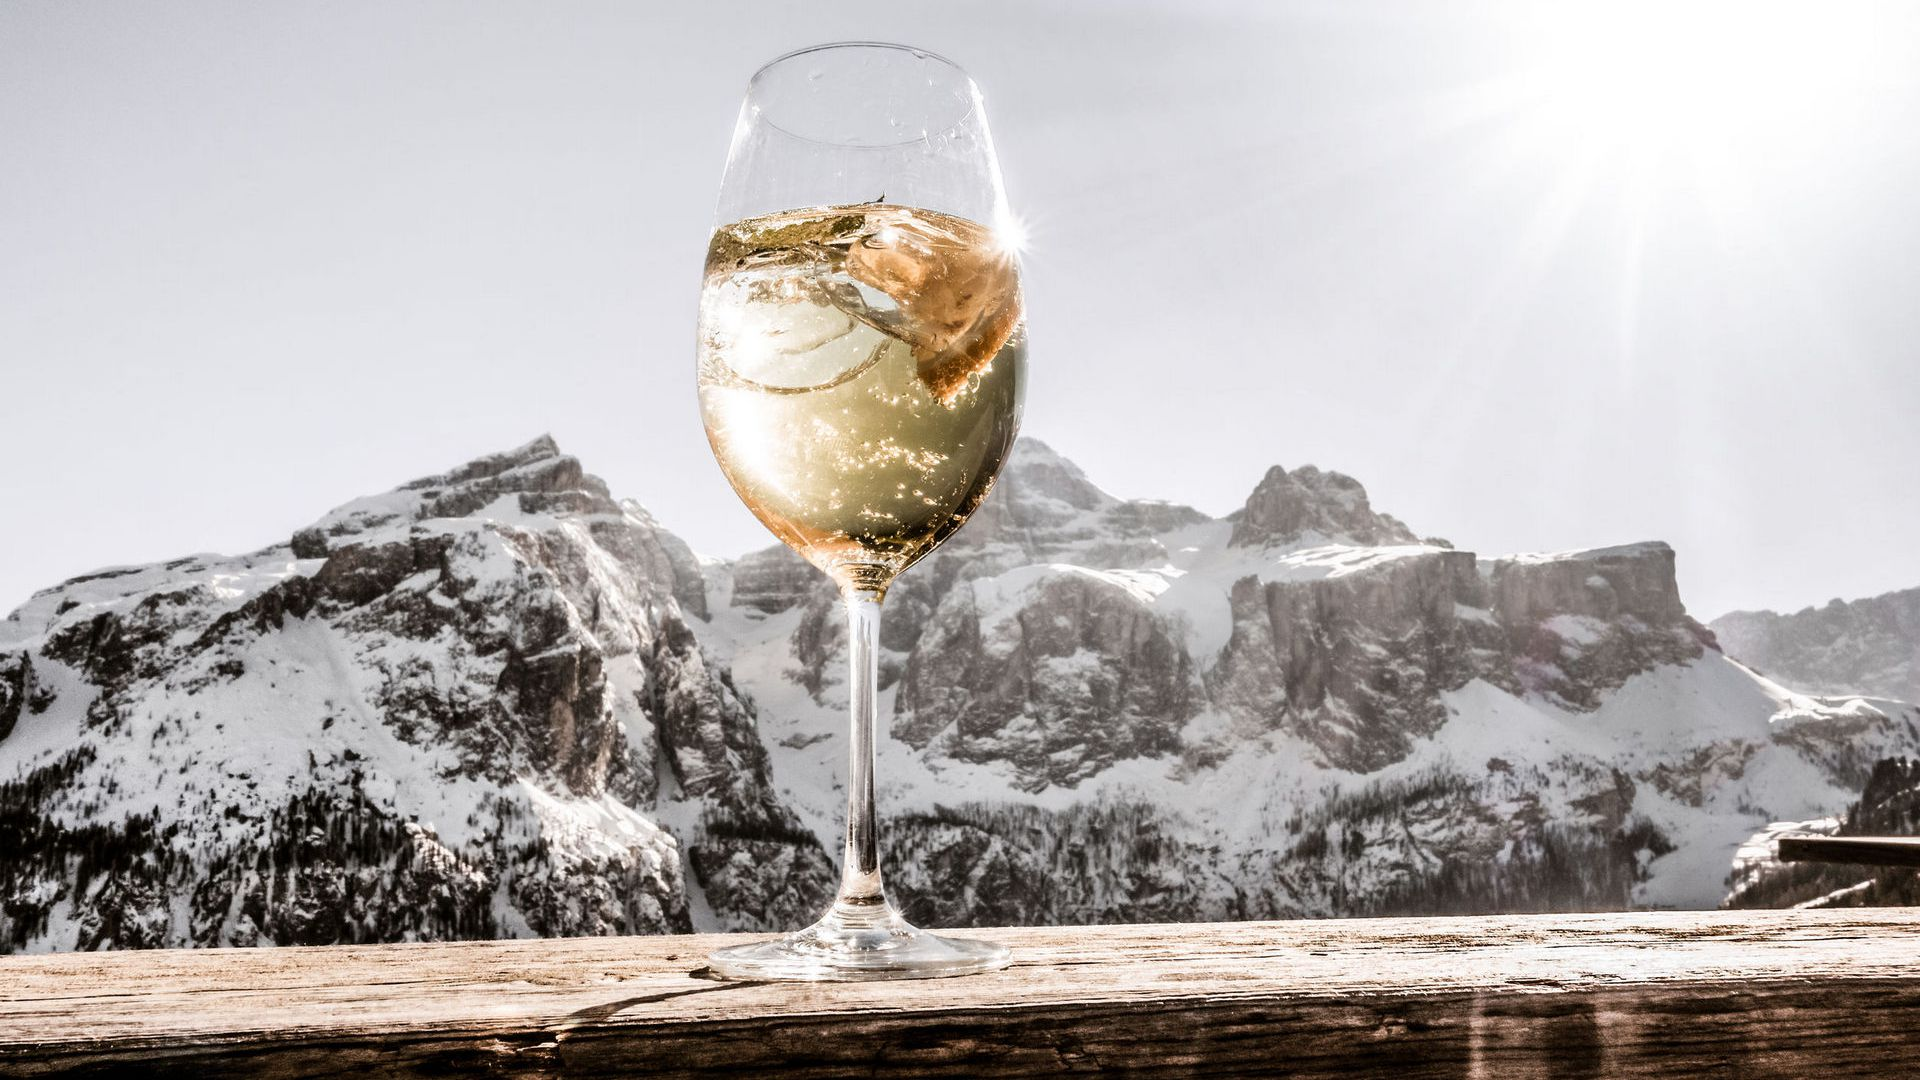 Image: Events & Shows in Alta Badia